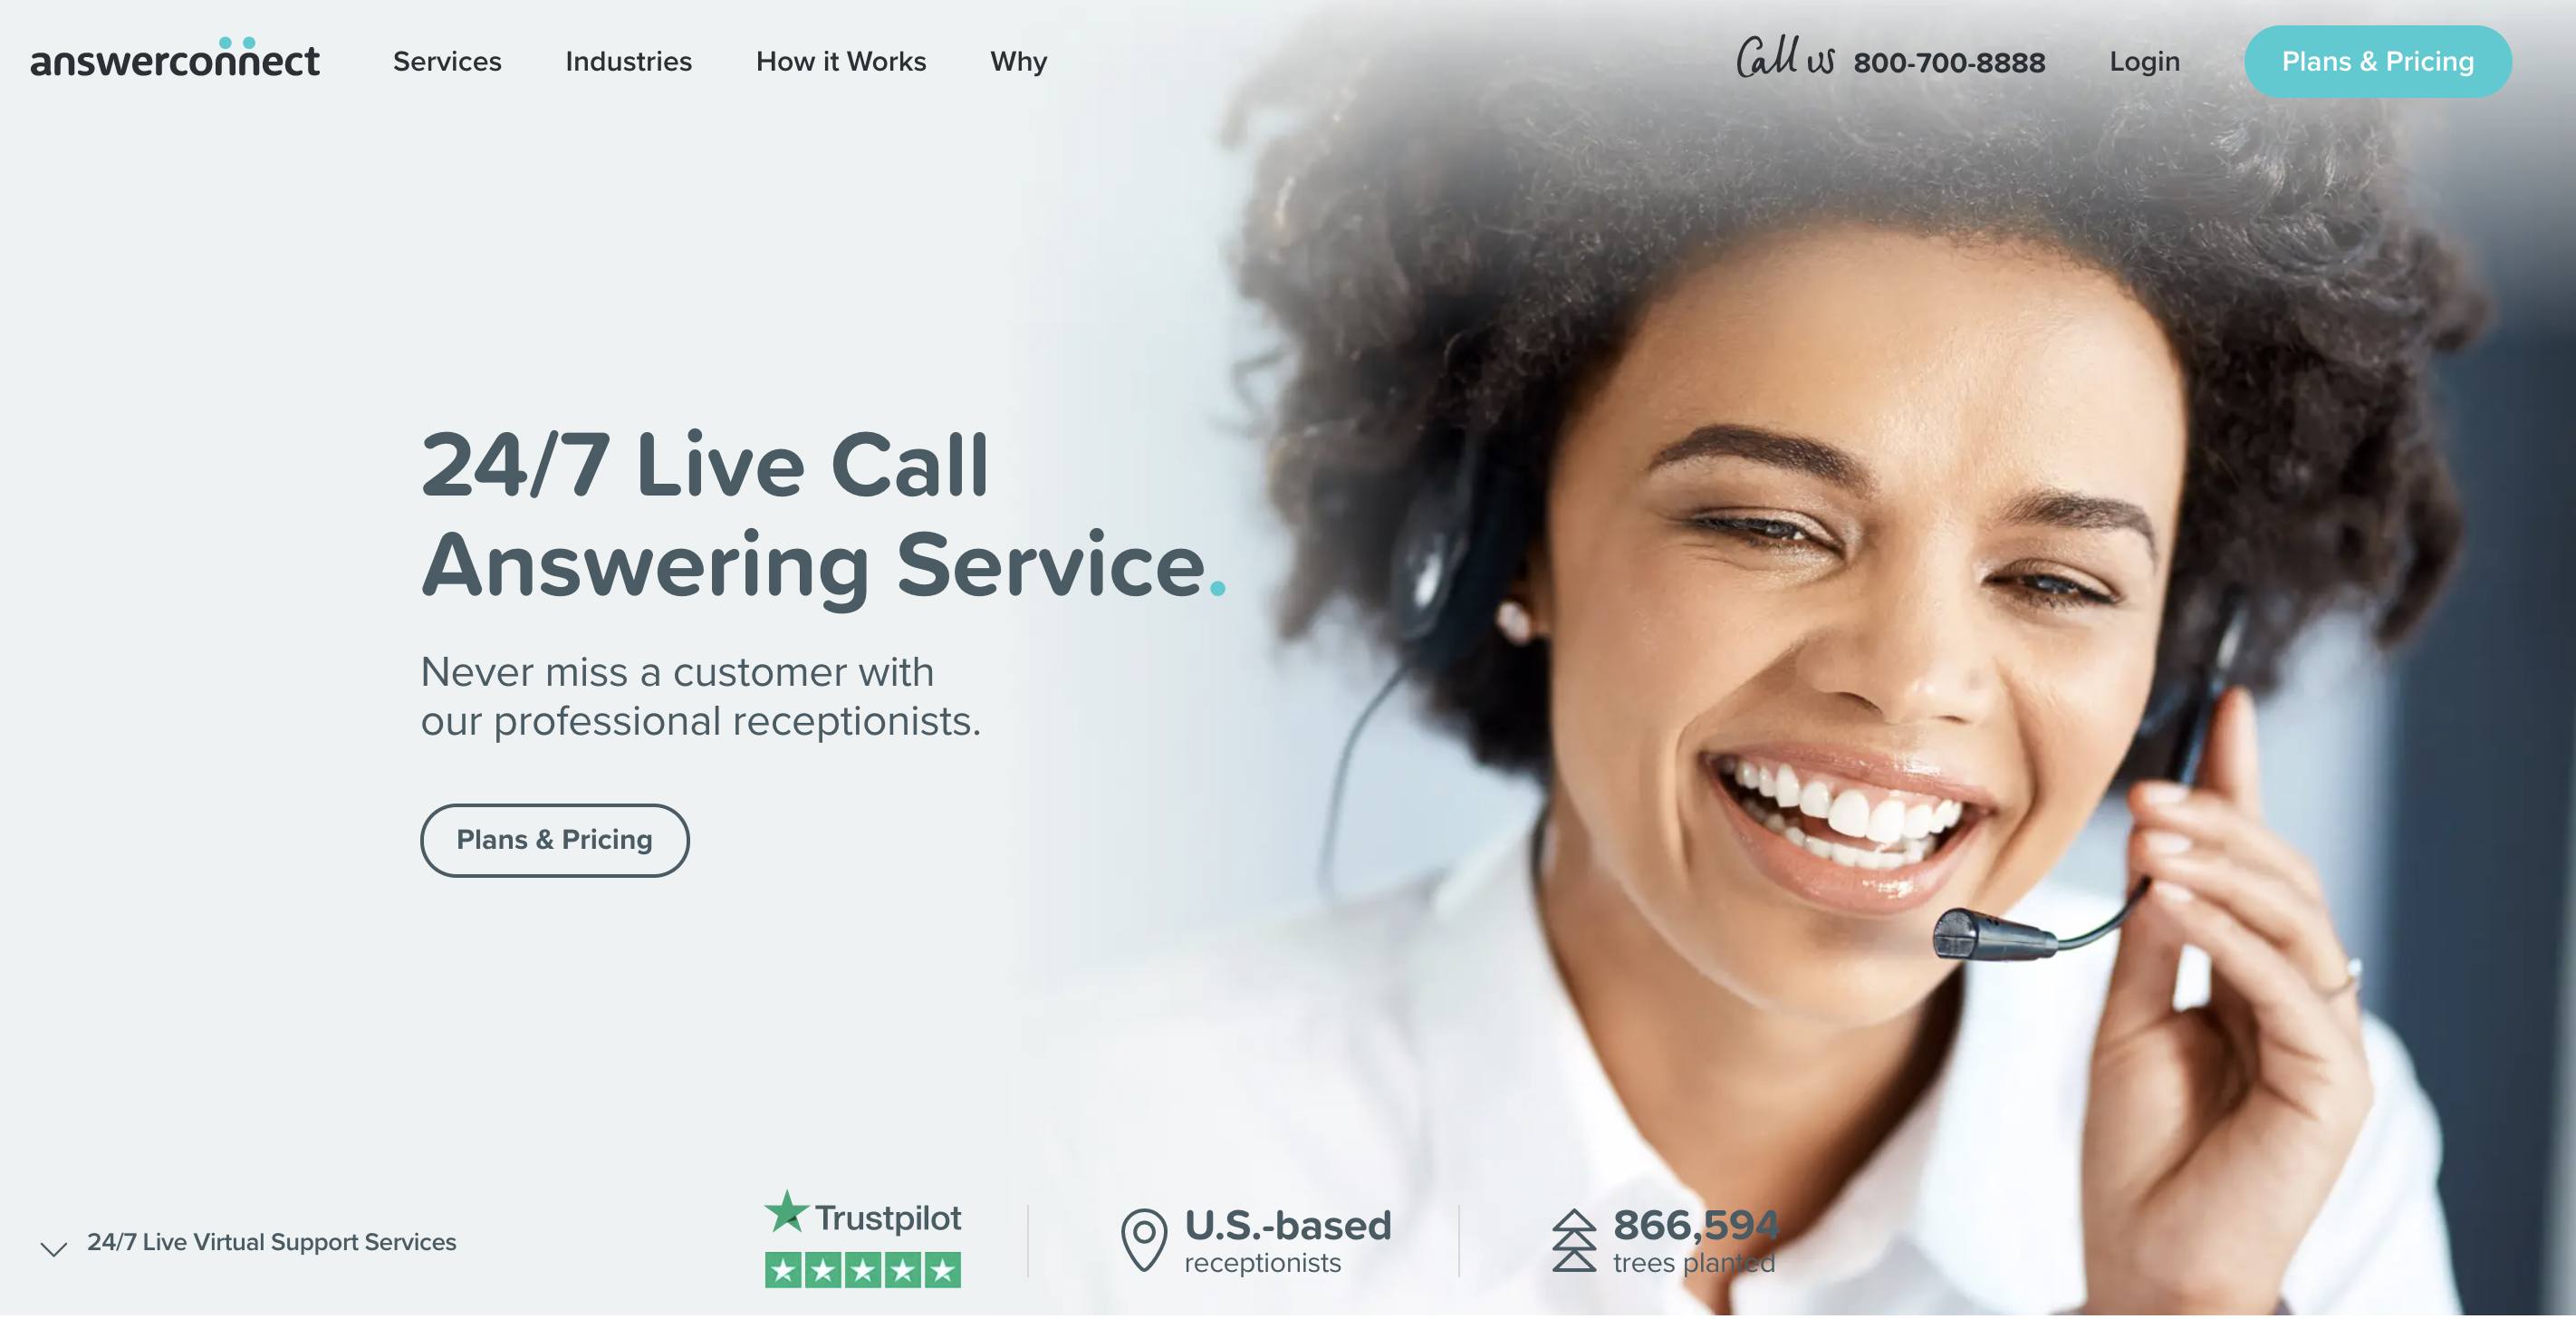 AnswerConnect home page